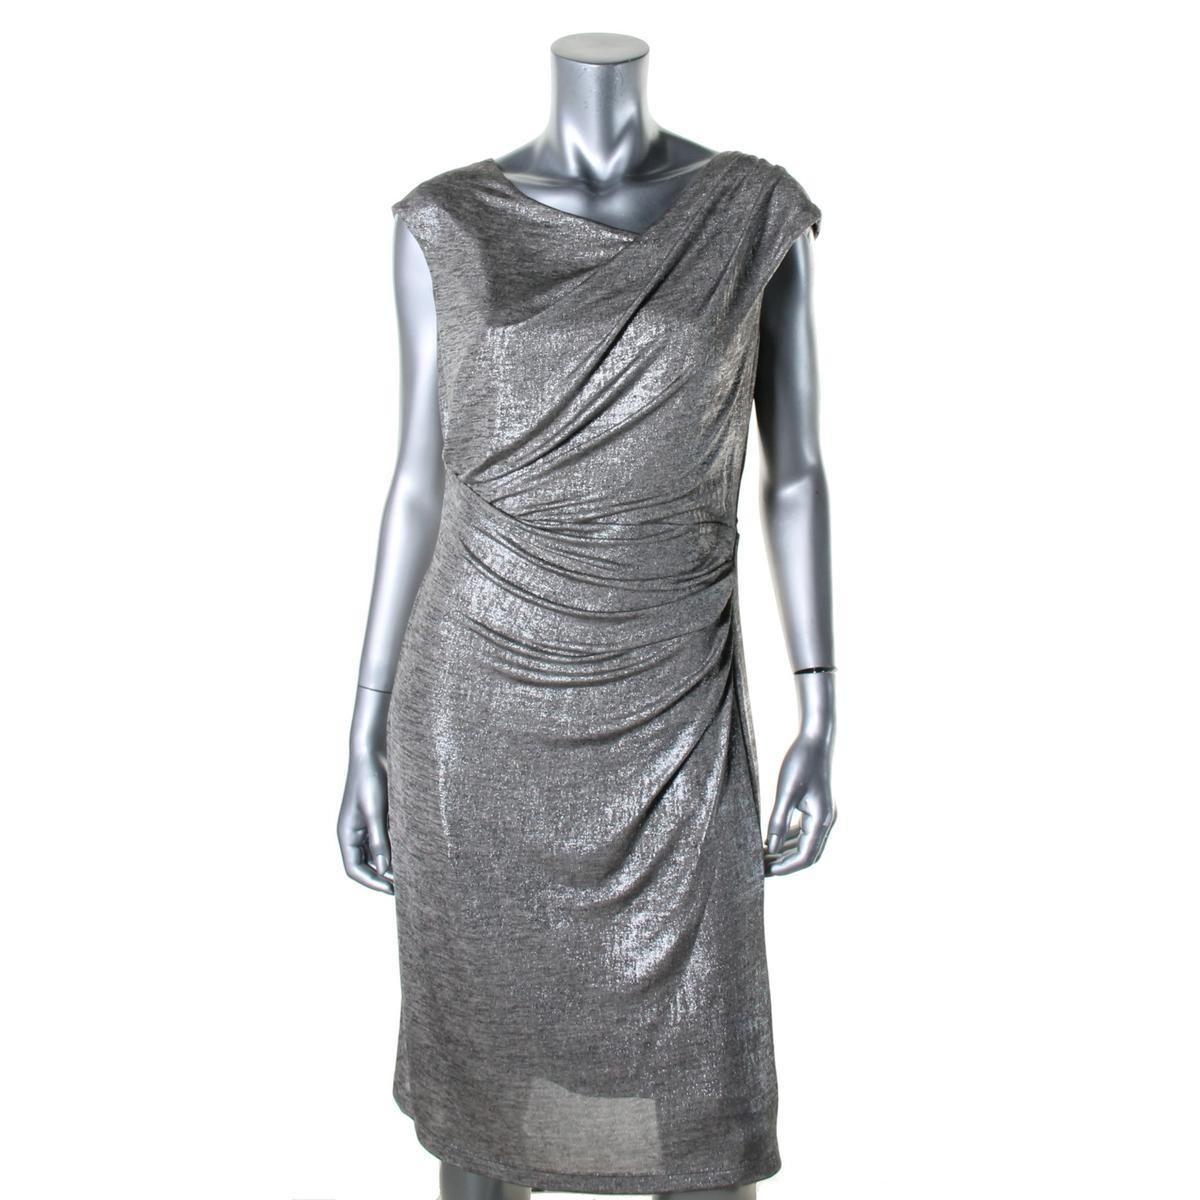 Awesome awesome connected apparel womens silver metallic